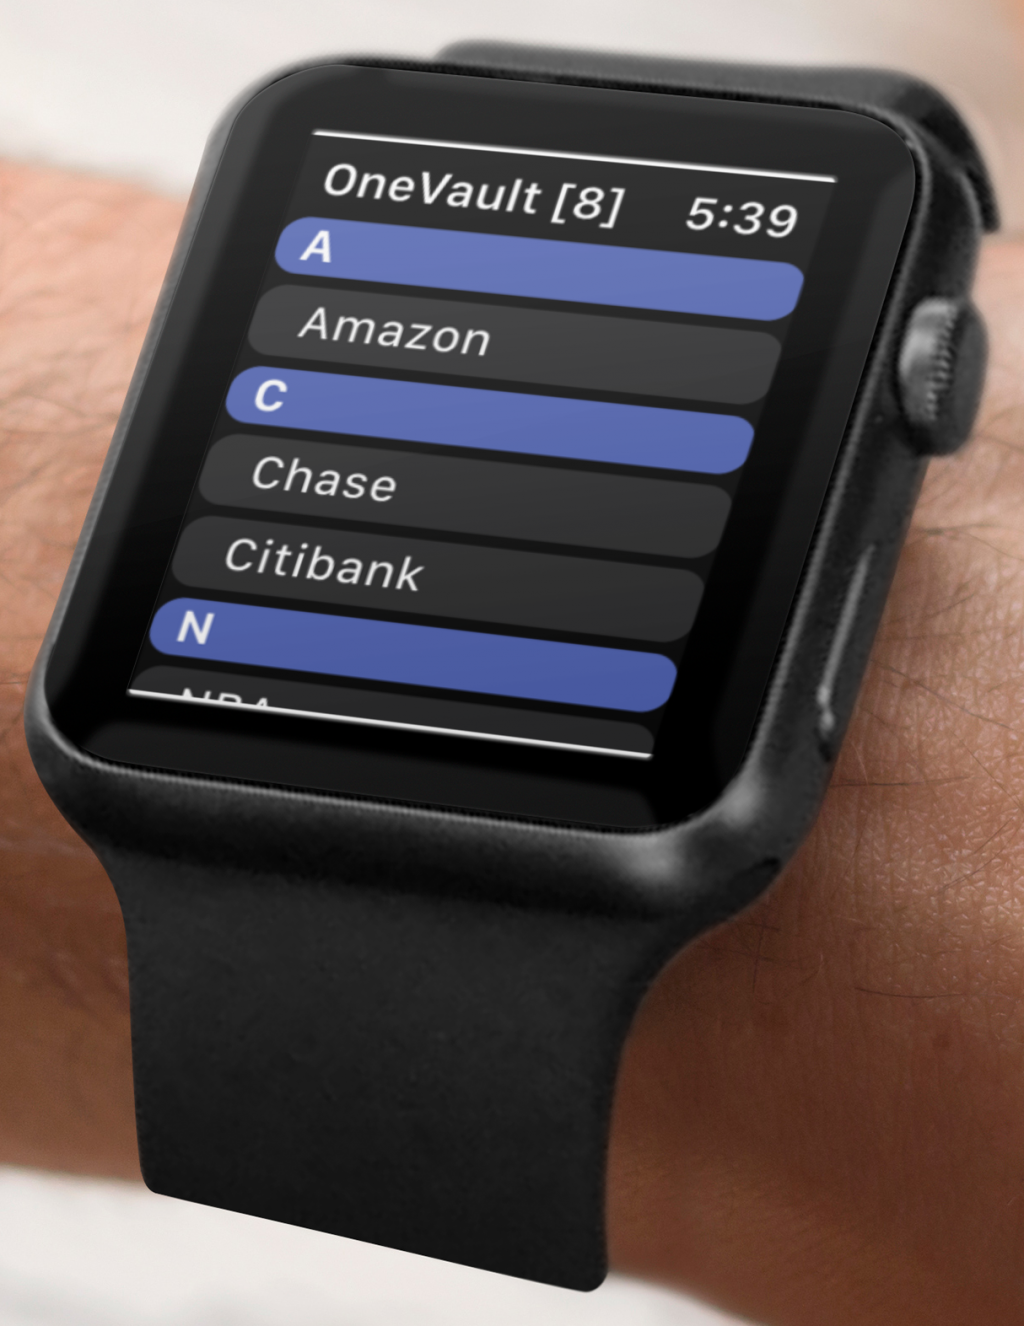 image-914199-Apple_Watch_1-45c48.png